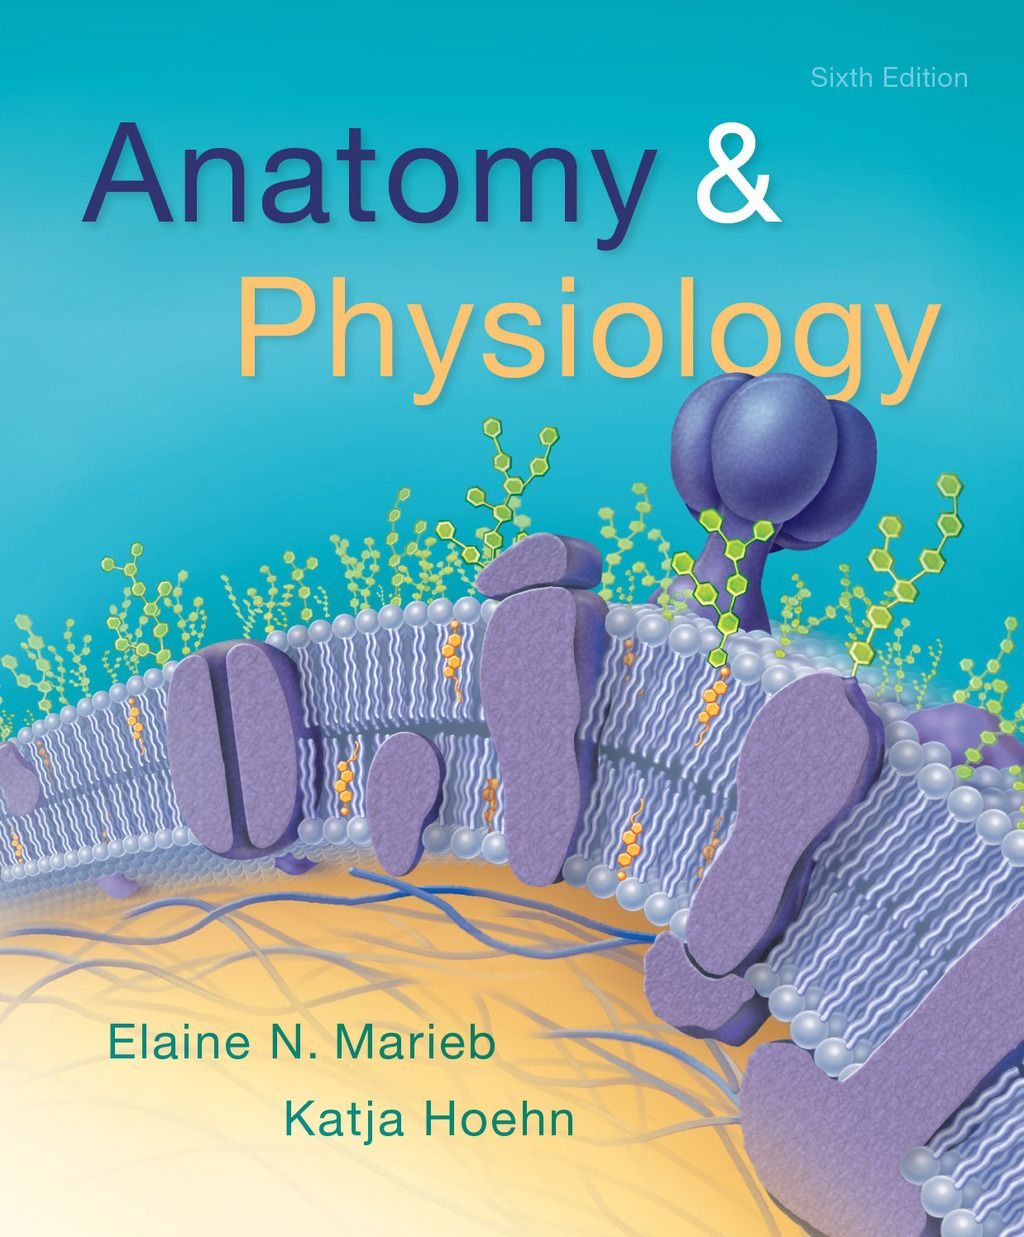 Anatomy & Physiology (eBook Rental) in 2019 | Products | Anatomy